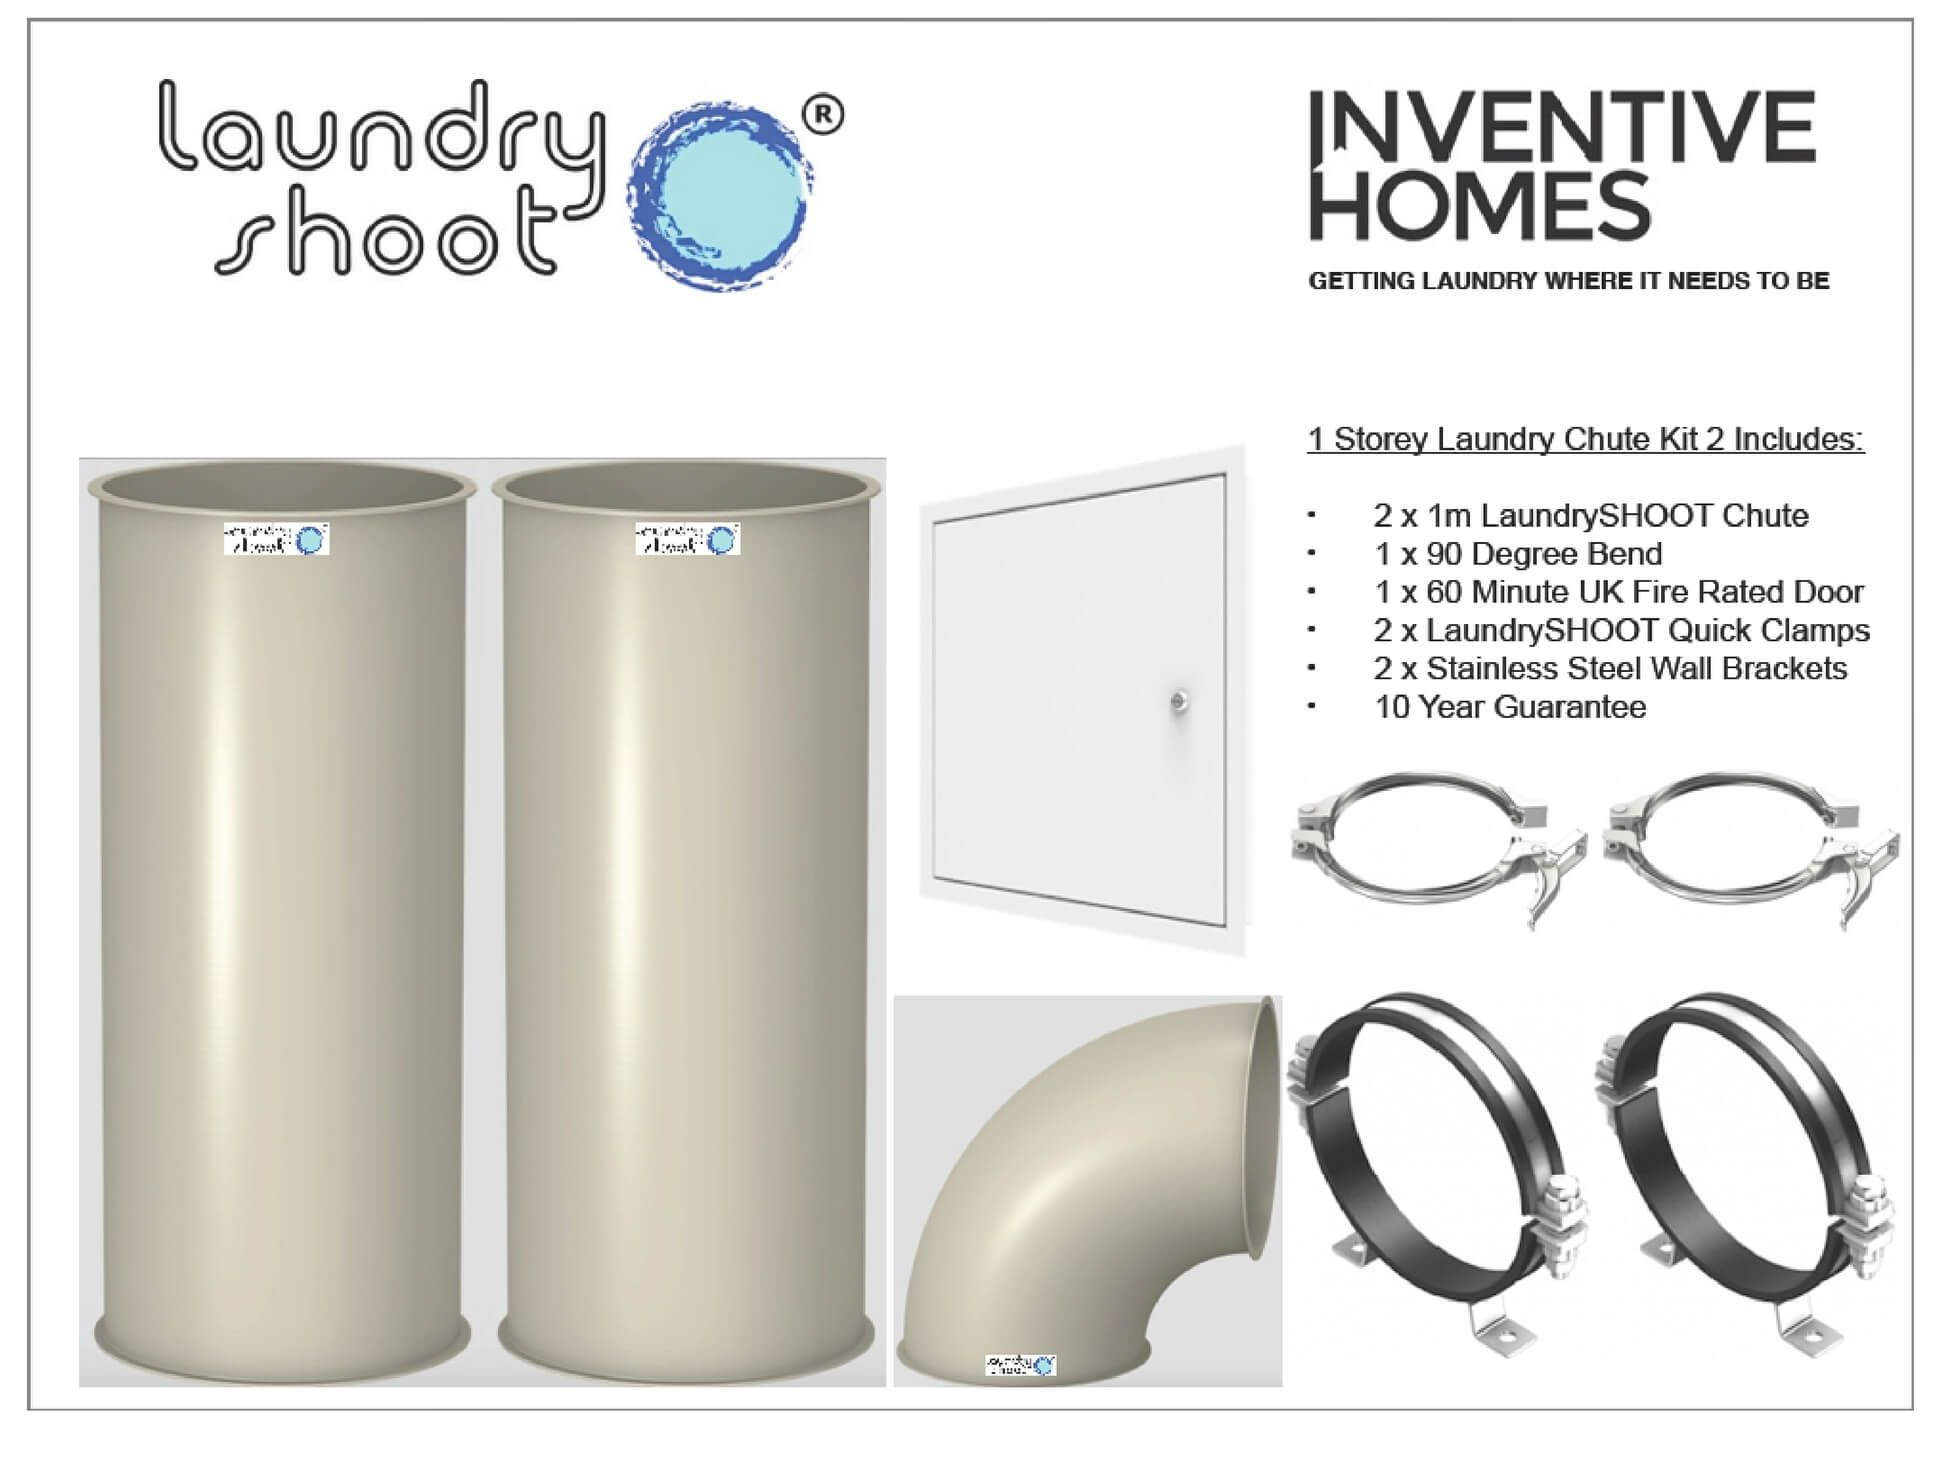 Laundry Shoot Laundry Chute 1 Storey Laundry Chute Kit 1 Inc 90